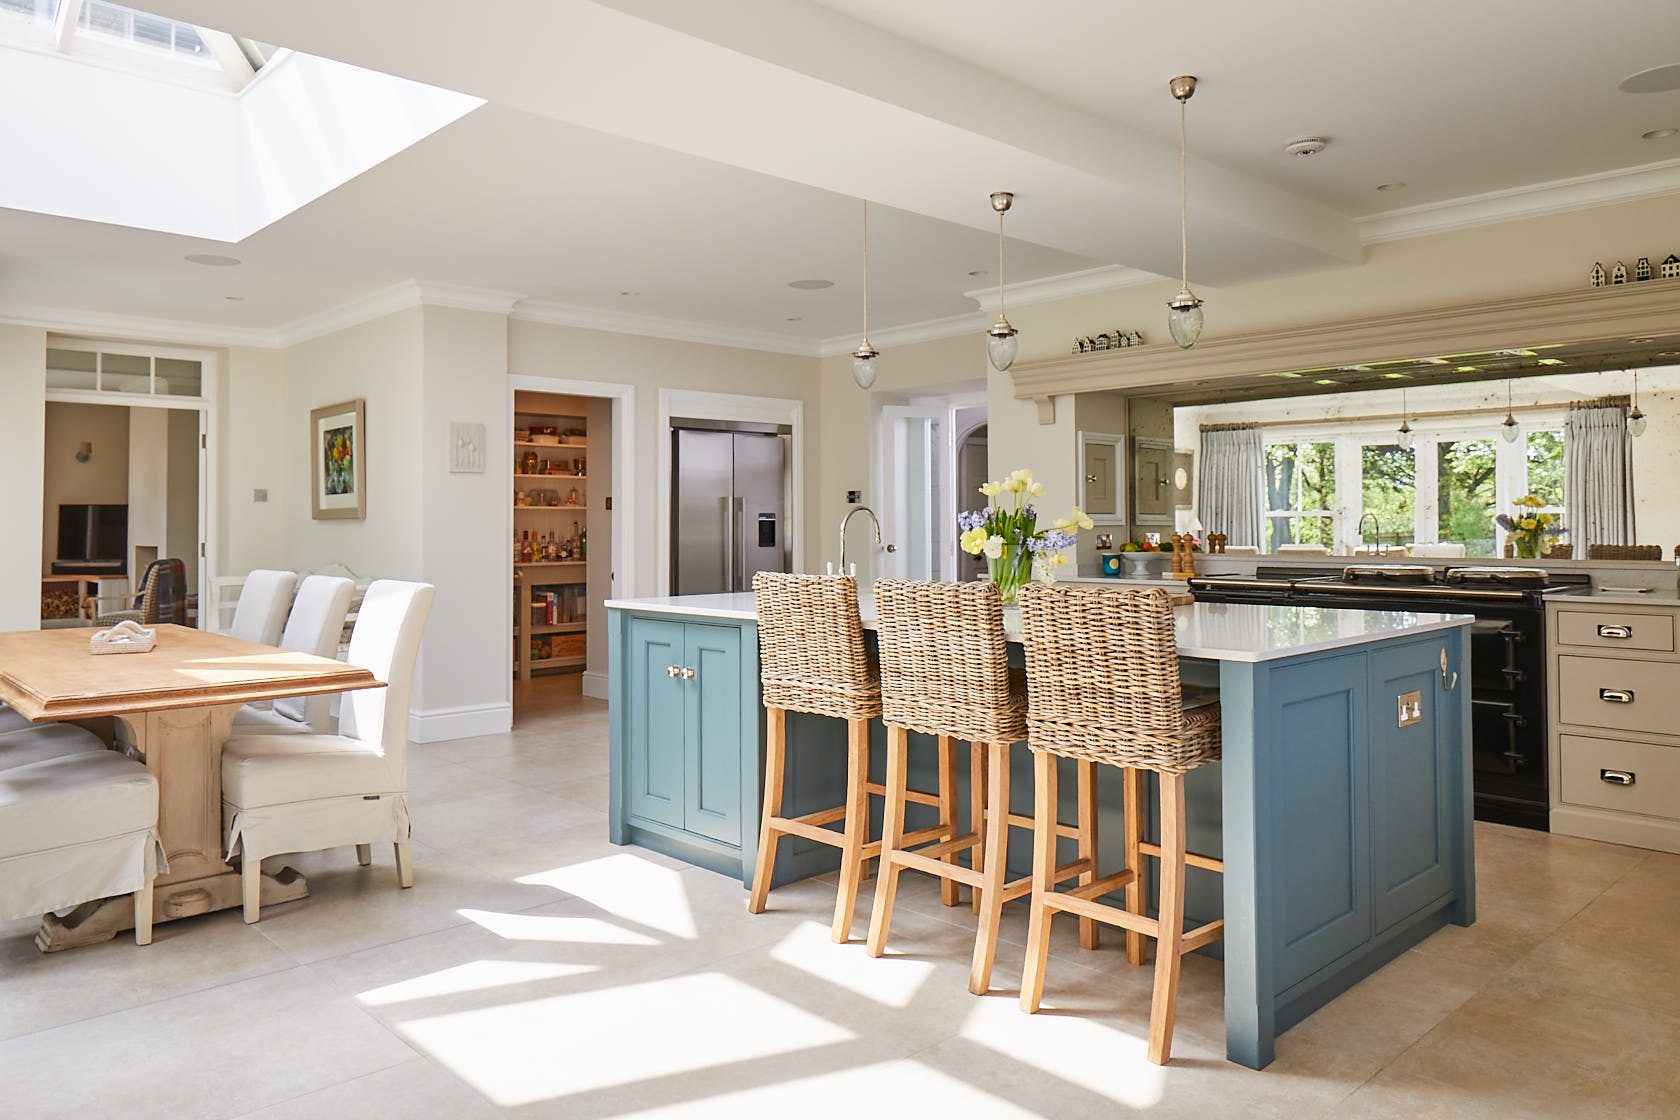 Open plan kitchen with bespoke kitchen island incorporating breakfast bar stools